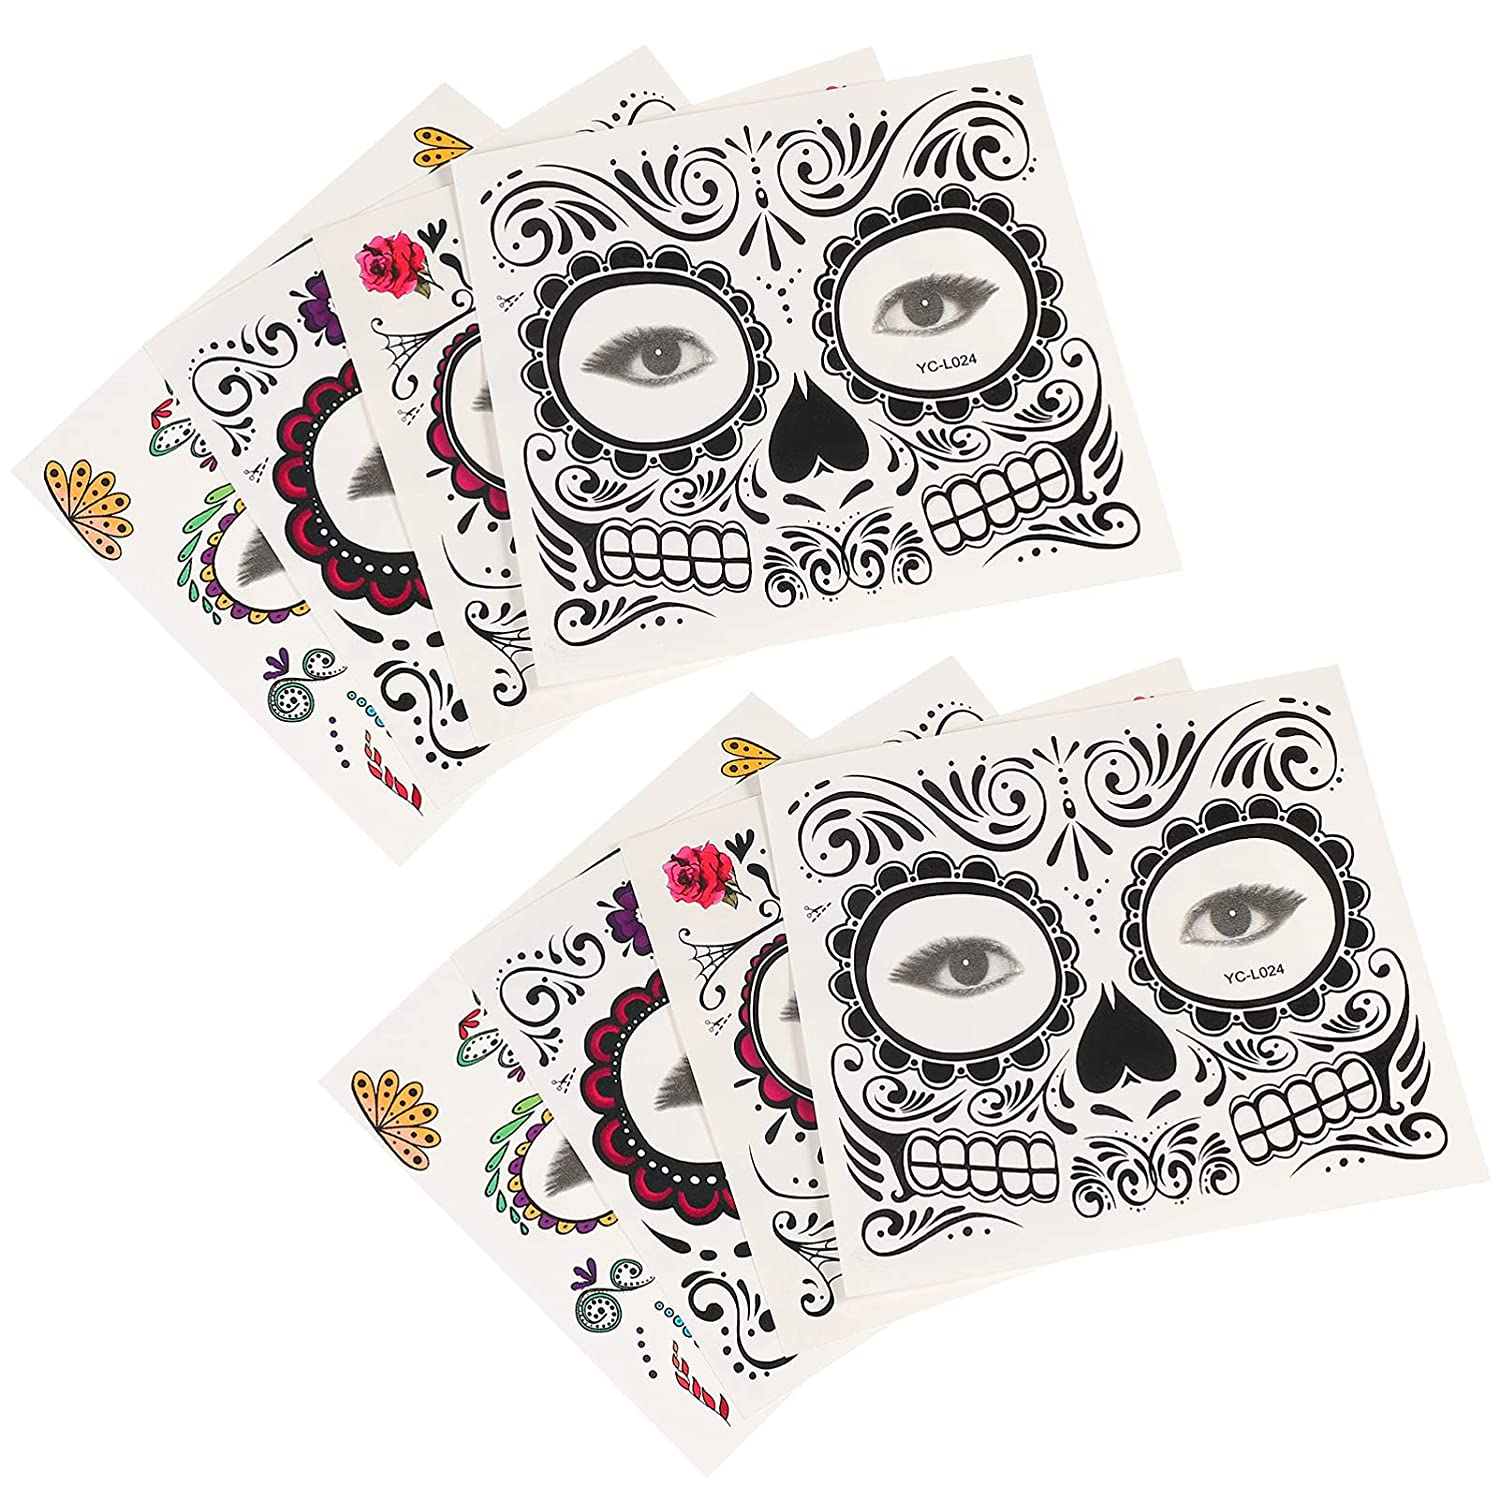 FRCOLOR sold out Max 76% OFF 8 Sheets Face Tattoo for Temp Skull Halloween Women Web